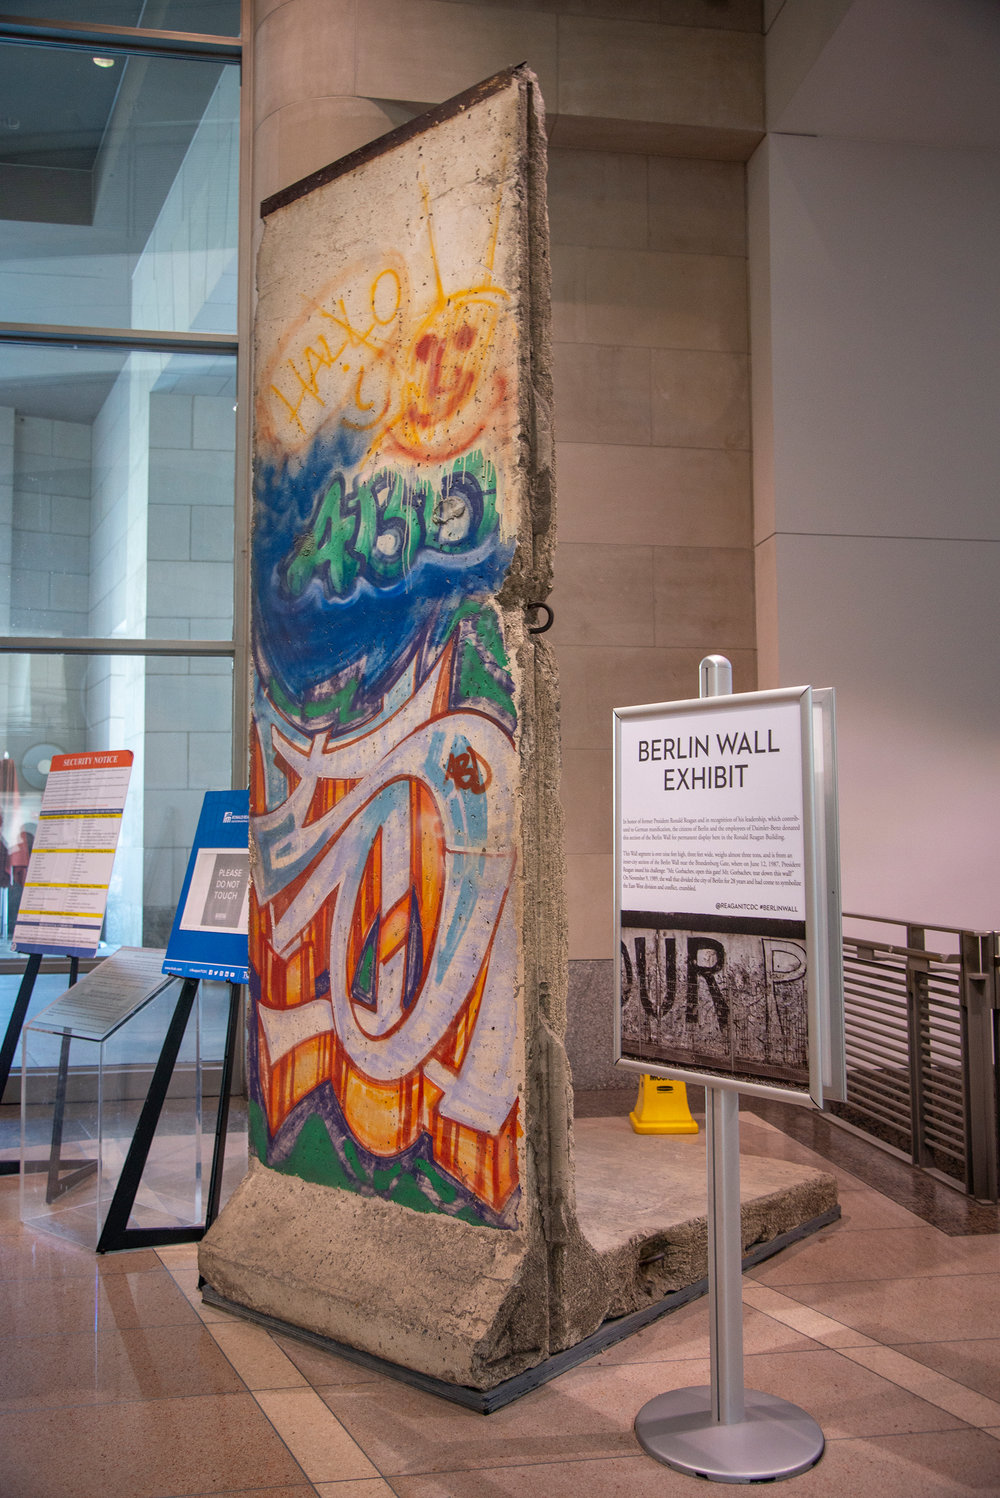 Guide to Washington DC: Berlin Wall in Regan Building